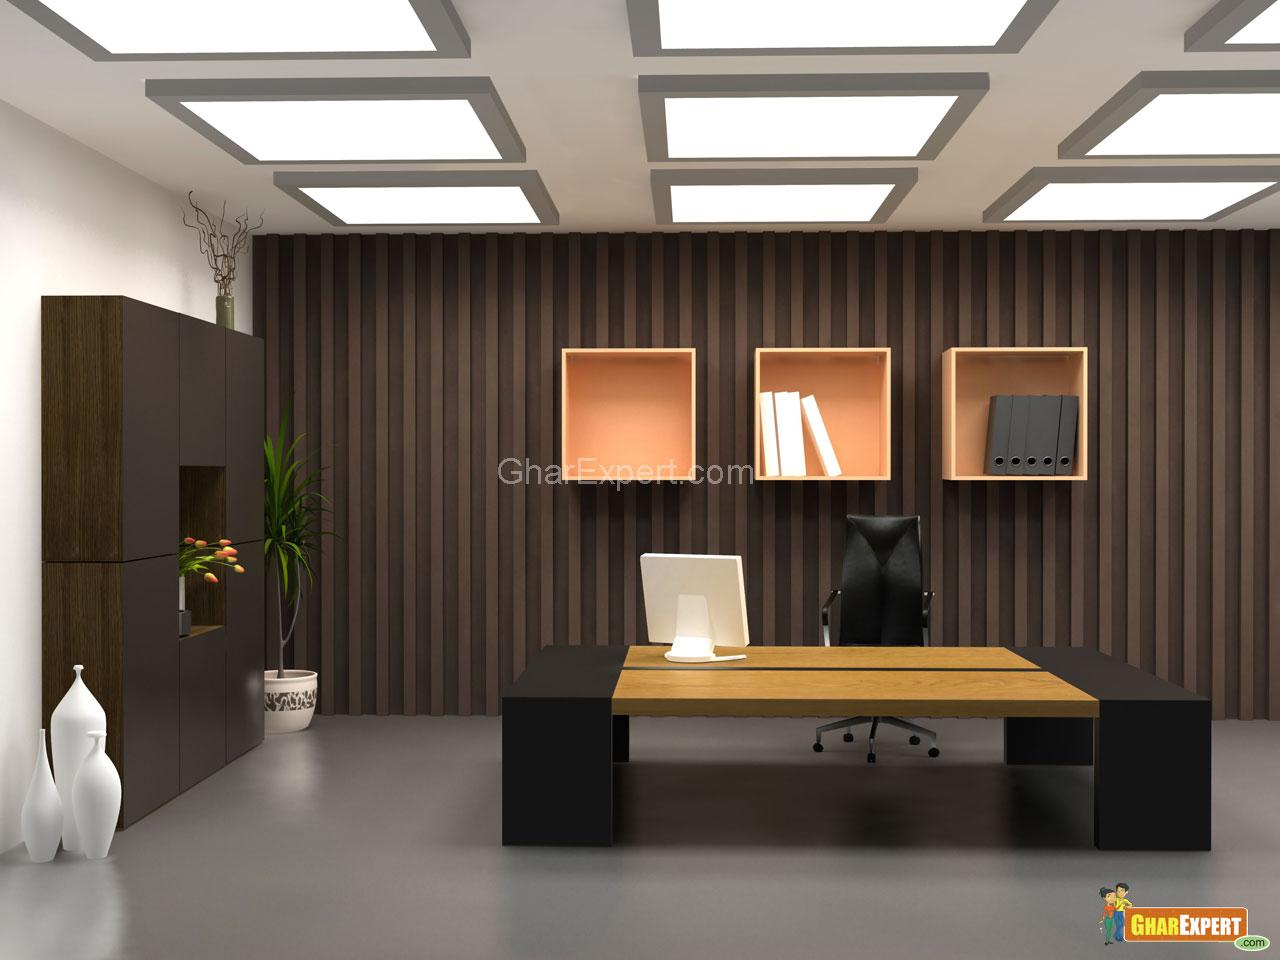 Office interior gharexpert for Interior designs of offices